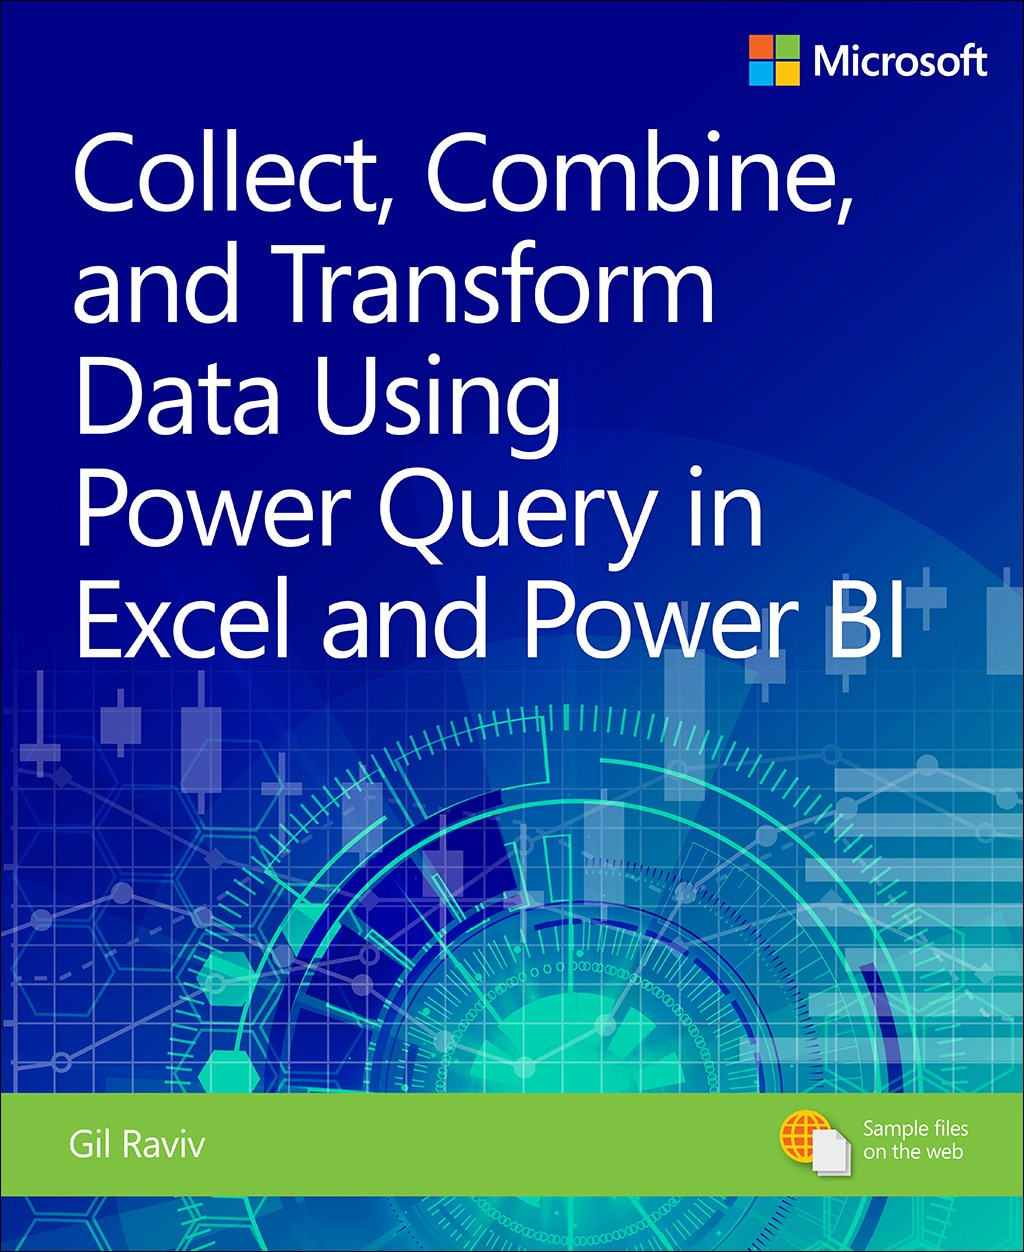 Collect, Combine, and Transform Data Using Power Query in Excel and Power